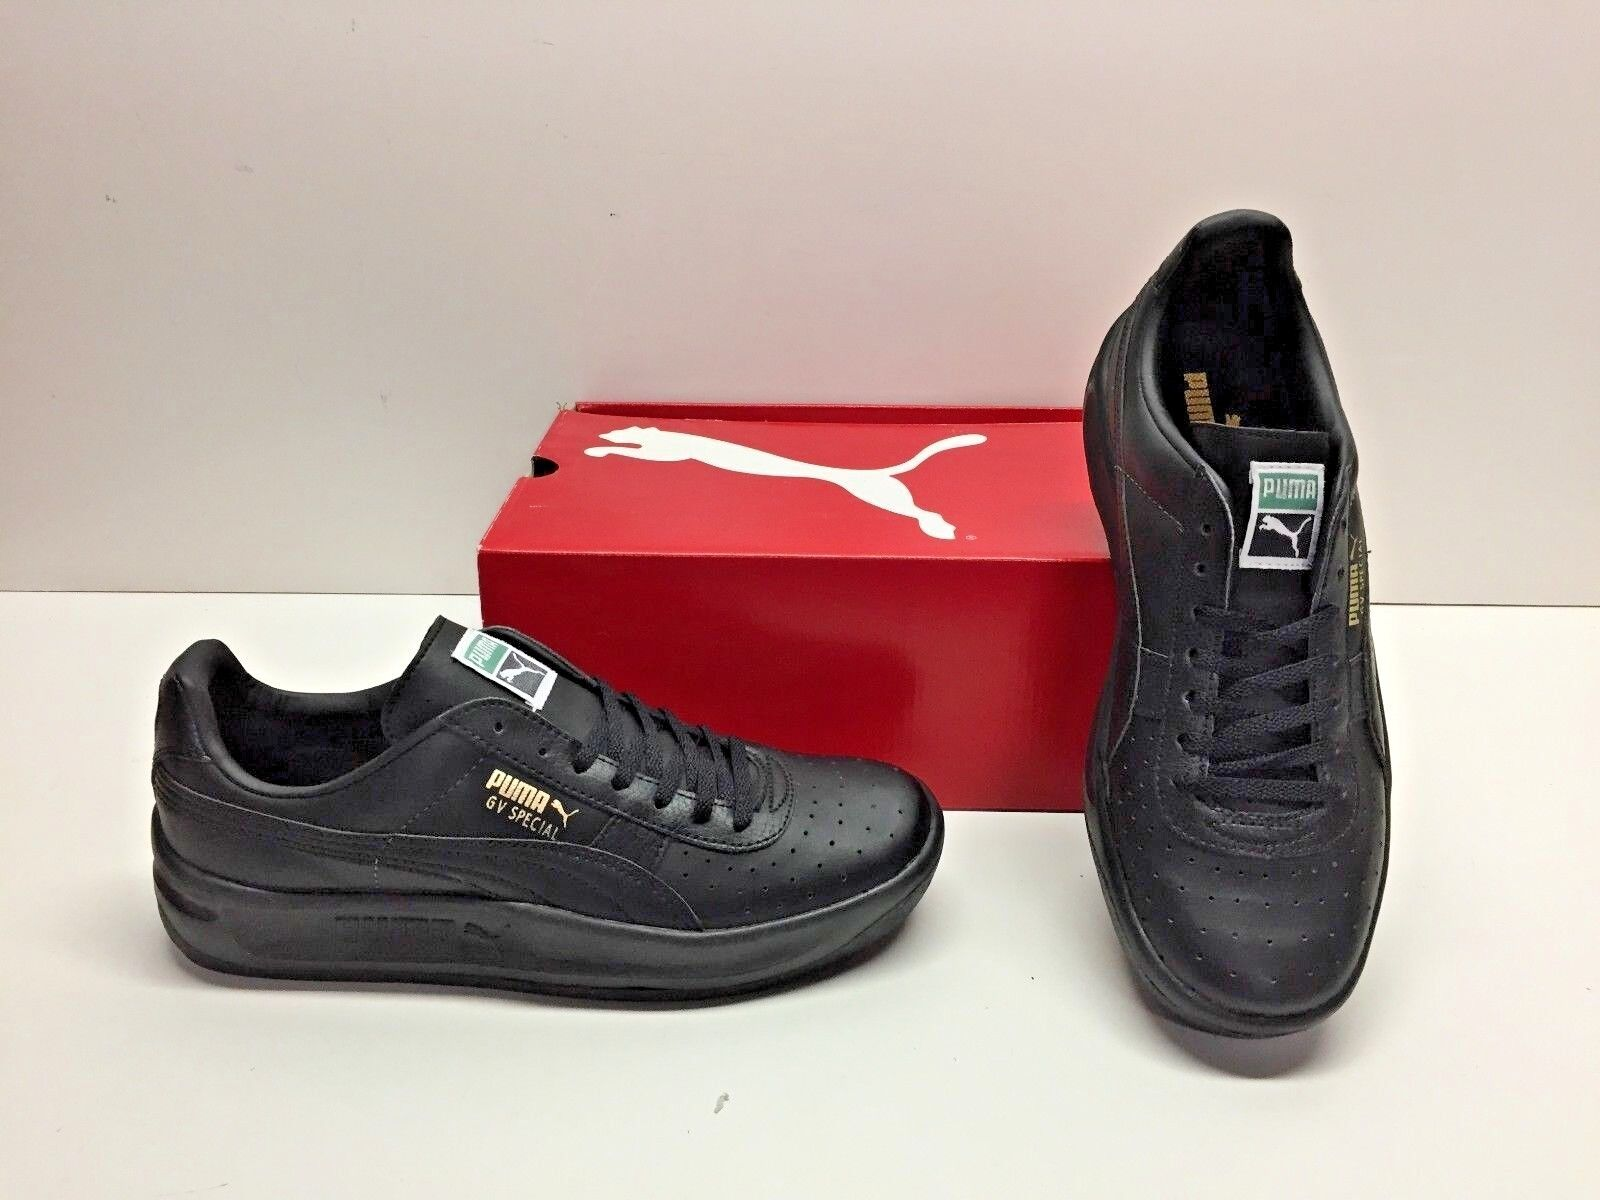 new styles 771ee 870cc Puma GV Special Black Tennis Classic Walking Sneakers Shoes Mens 7 Womens  8.5